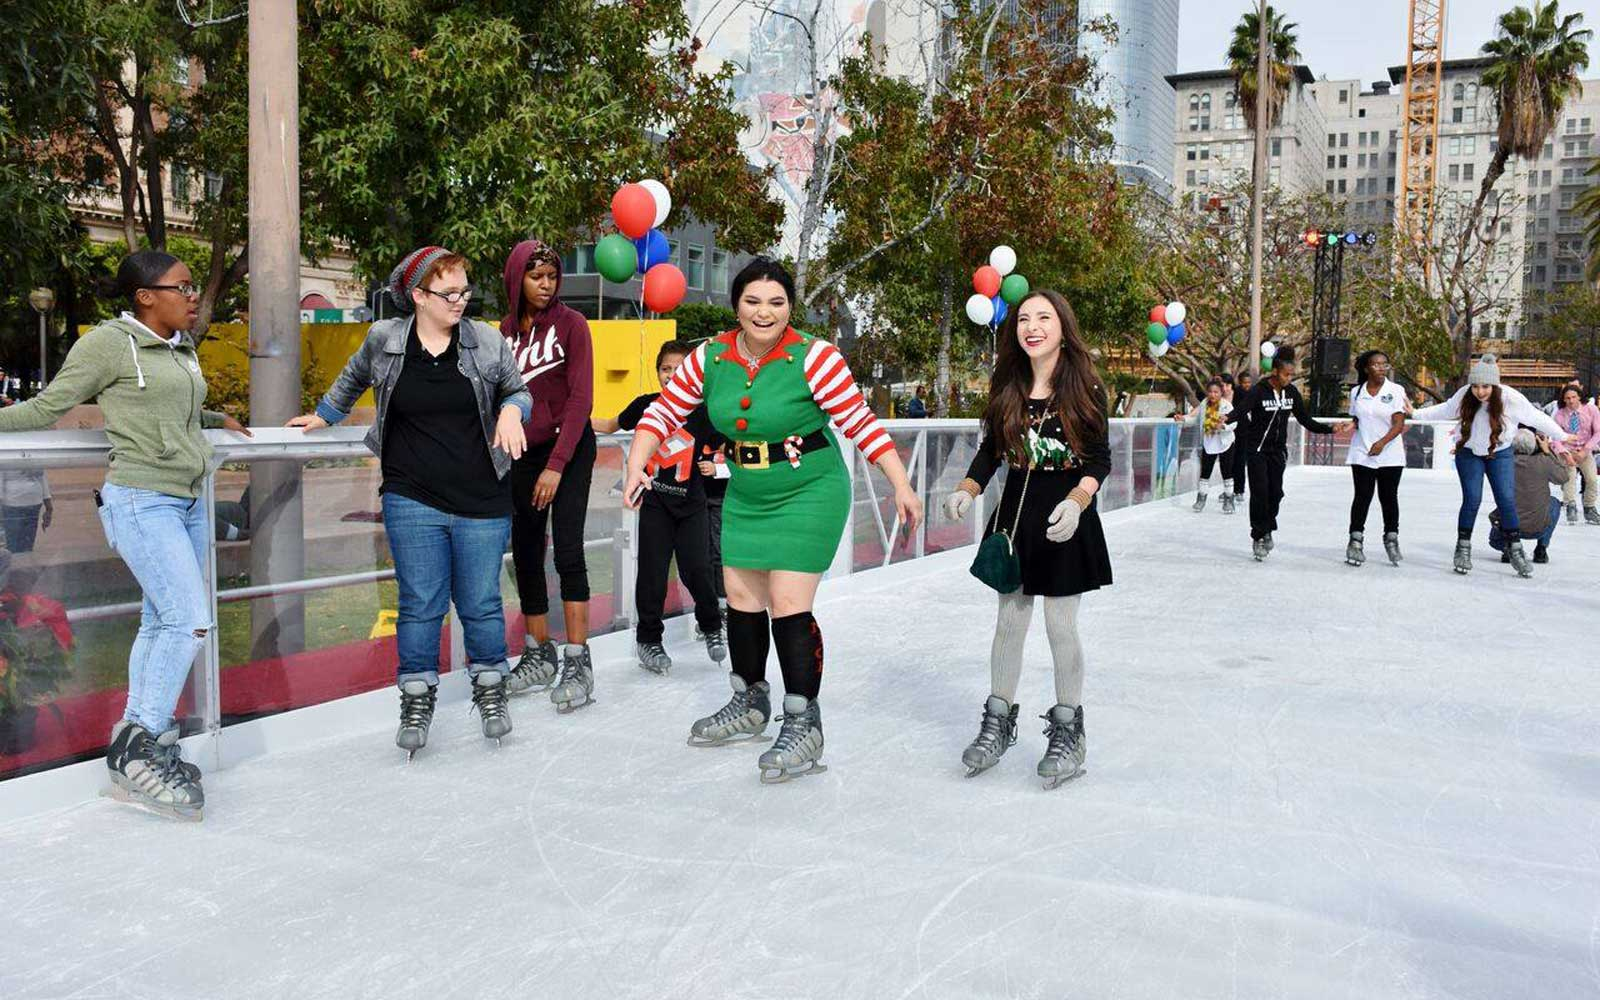 Bai Holiday Ice Rink in Pershing Square